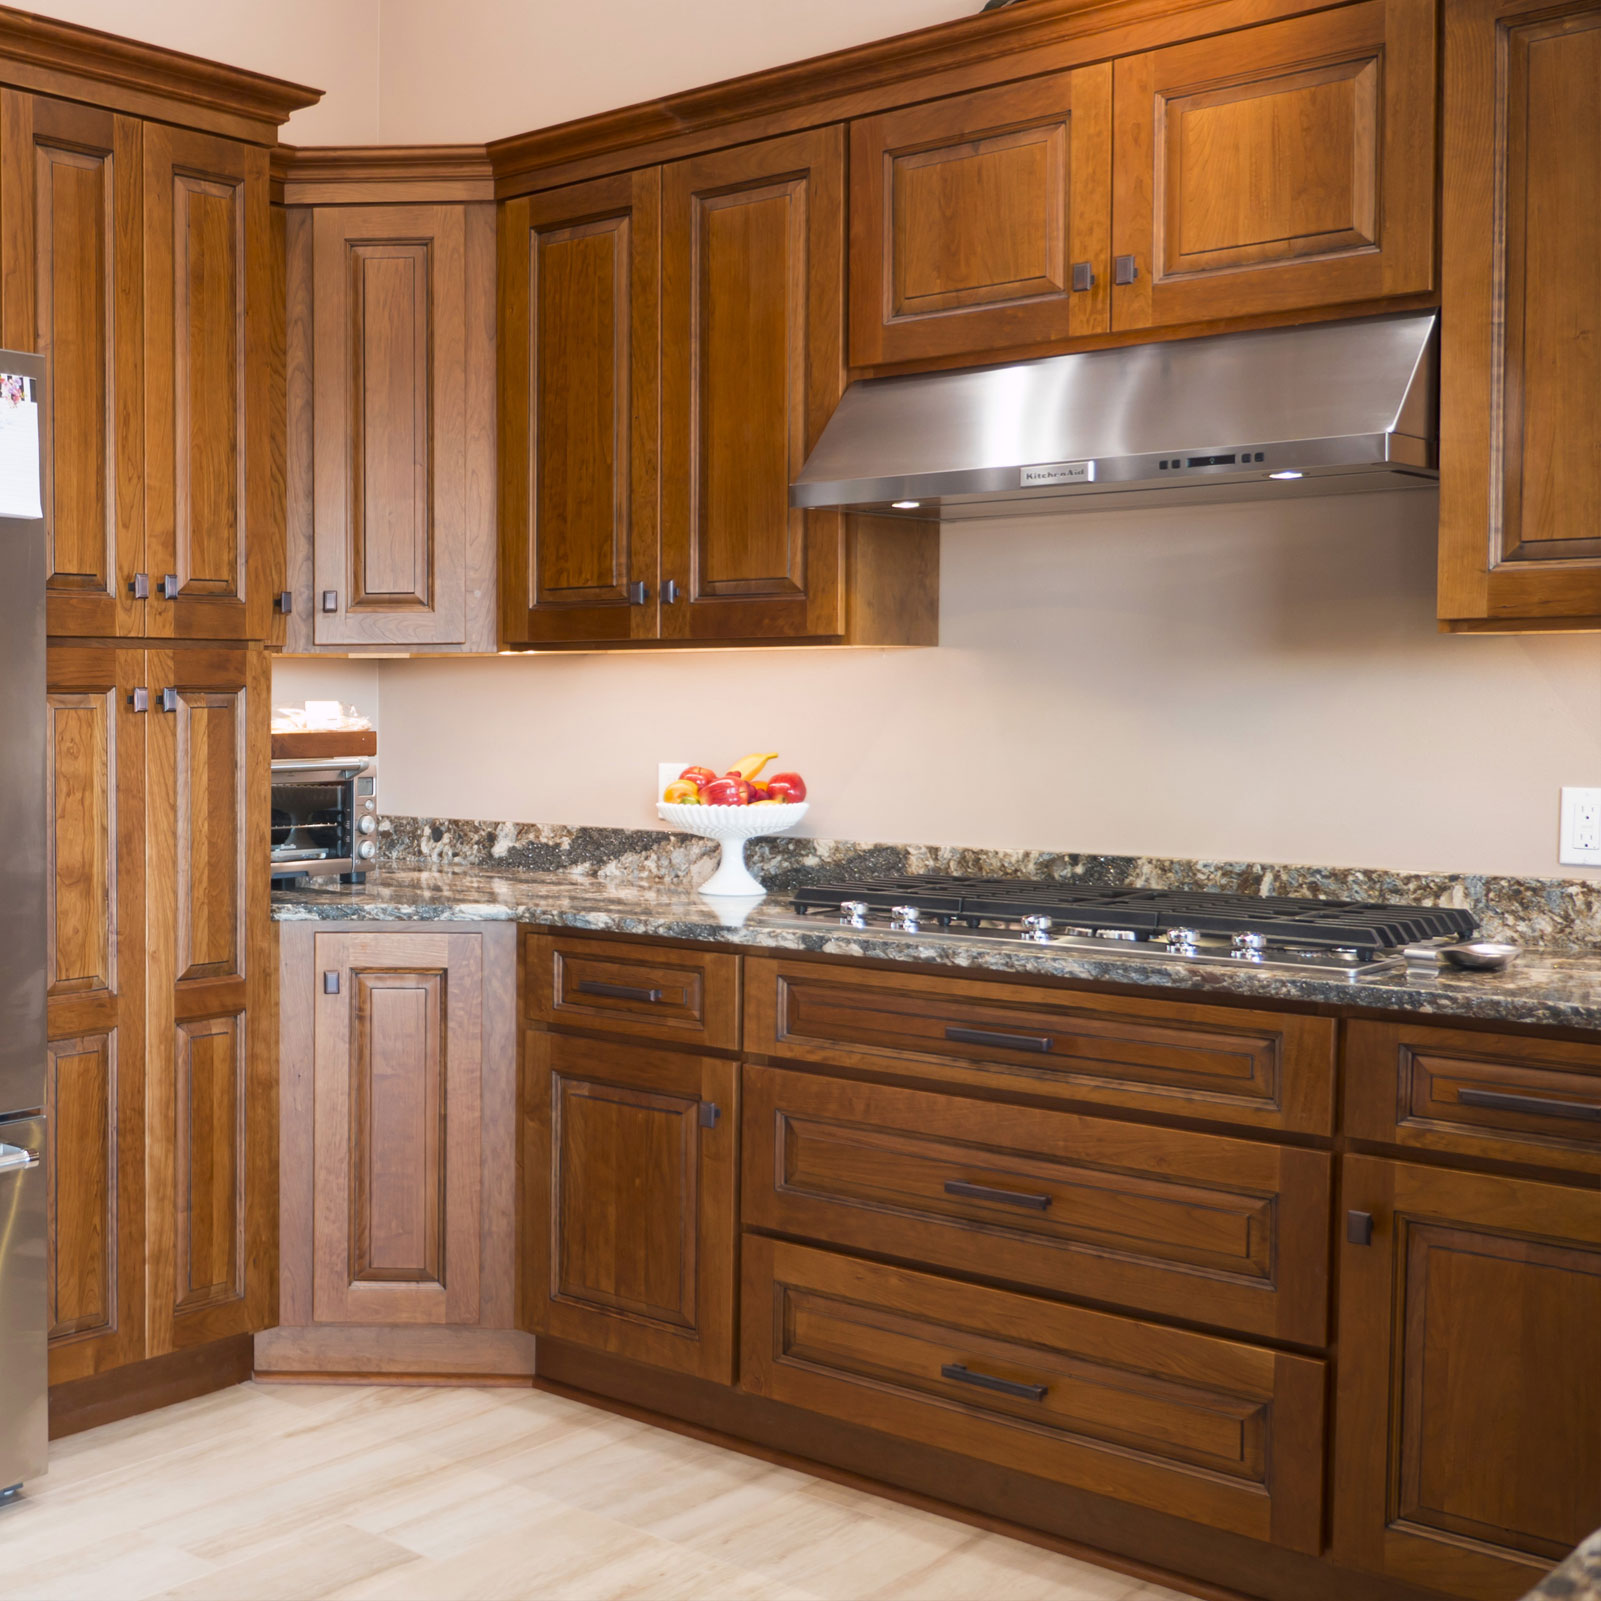 Kitchen Cabinets Wood Choices: Custom Cinnamon Stained Cherry Kitchen Cabinets